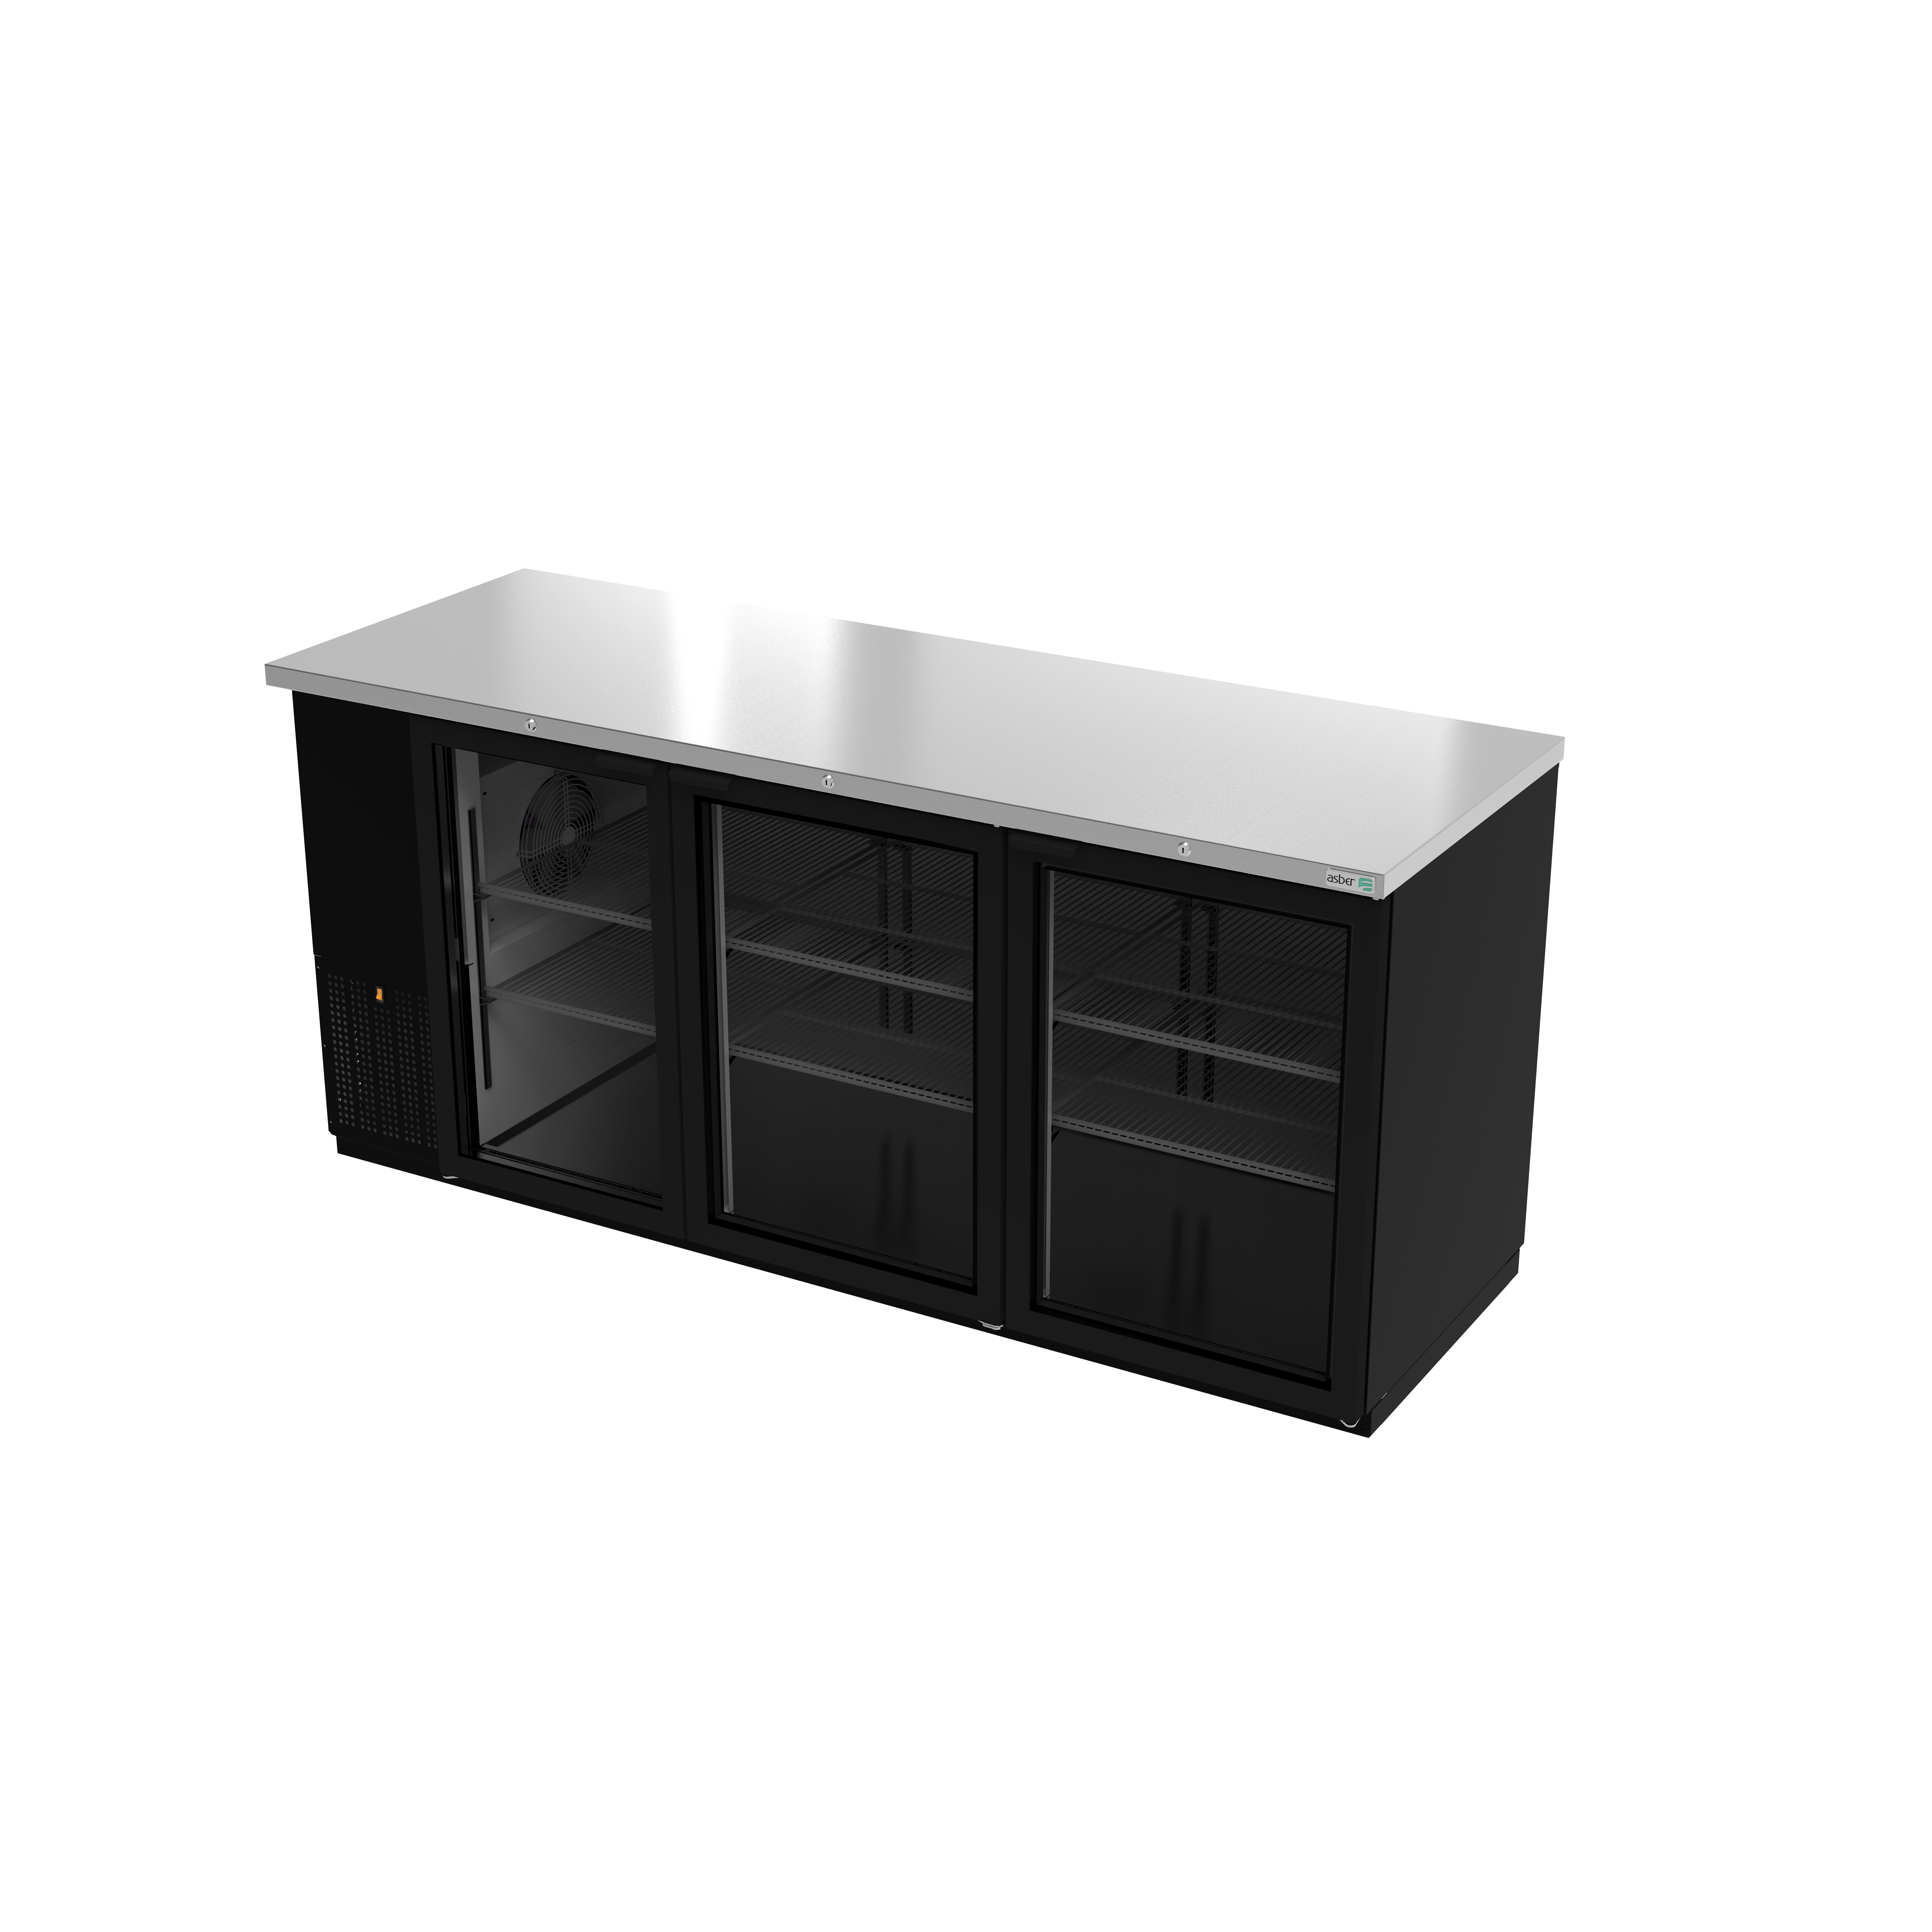 Asber ABBC-78G back bar cabinet, refrigerated